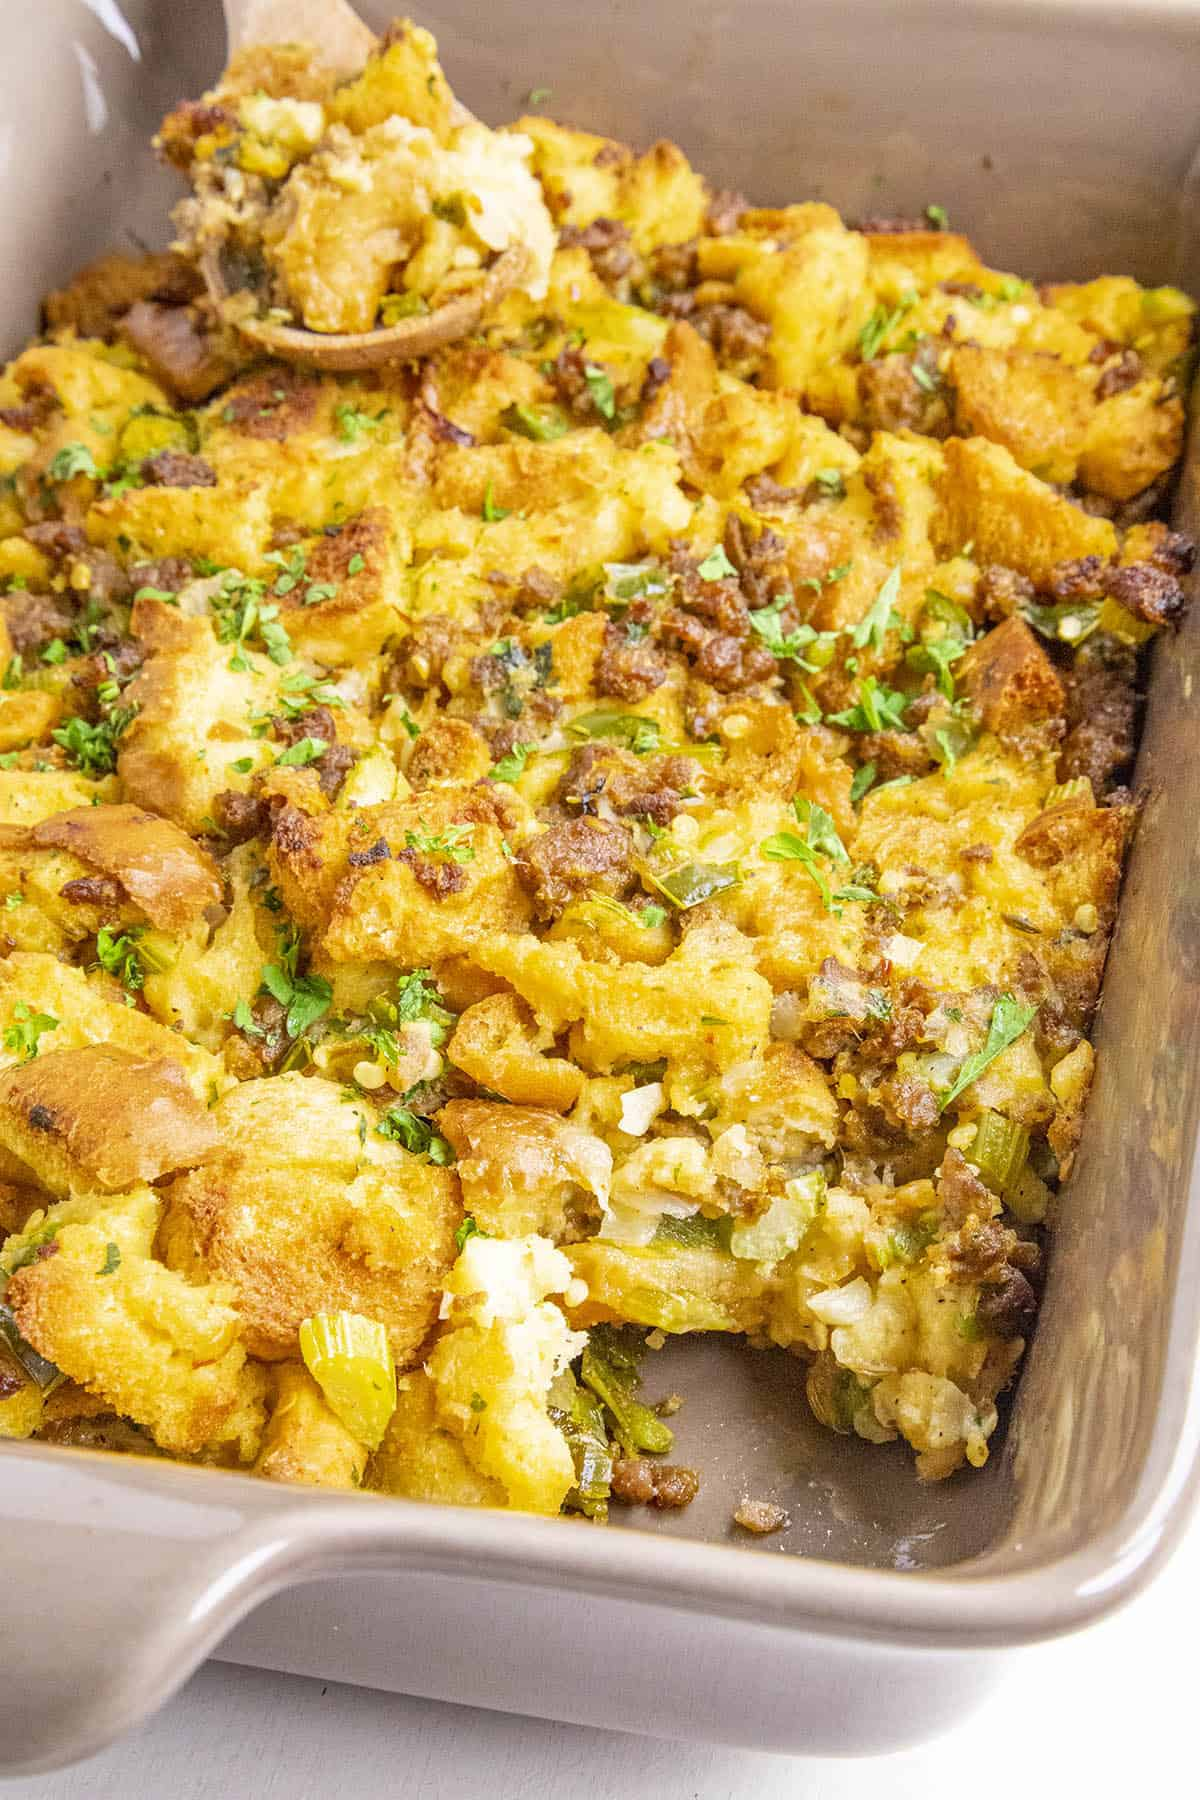 Serving up our Sausage Stuffing